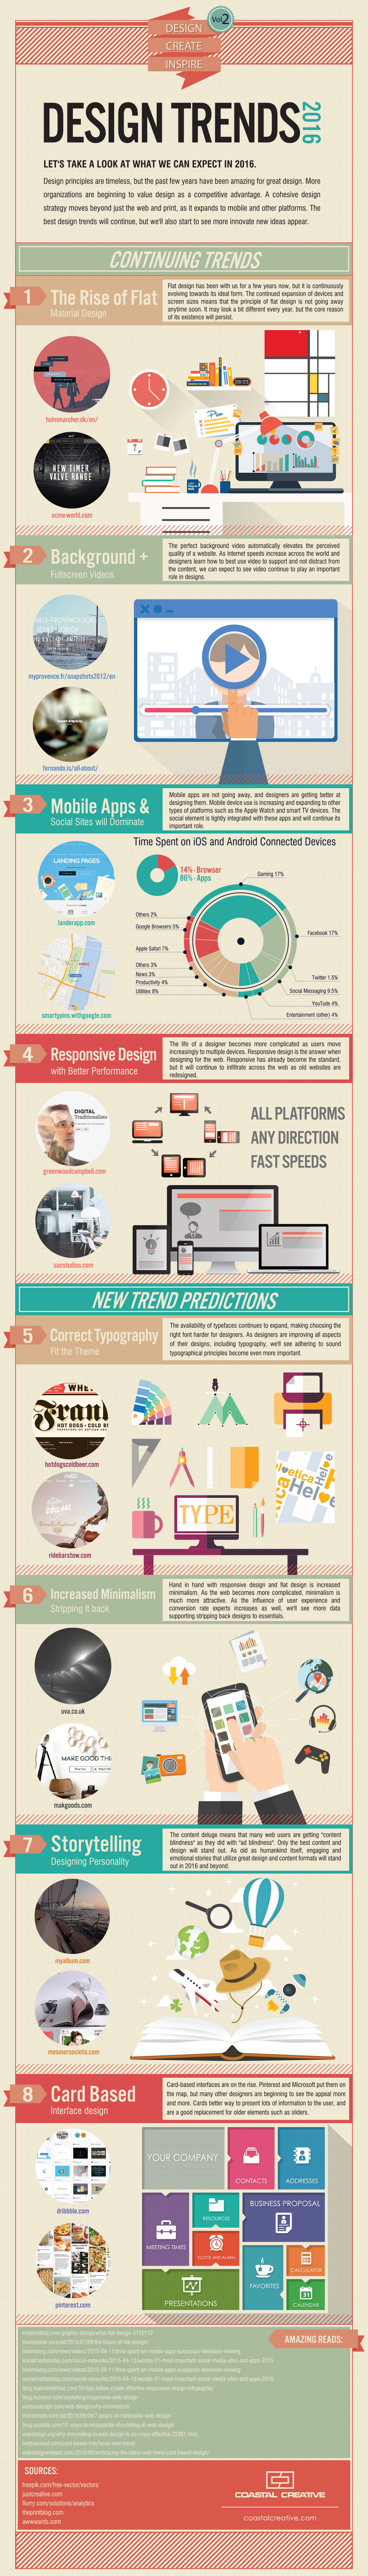 Web Design Trends 2016 Infographic